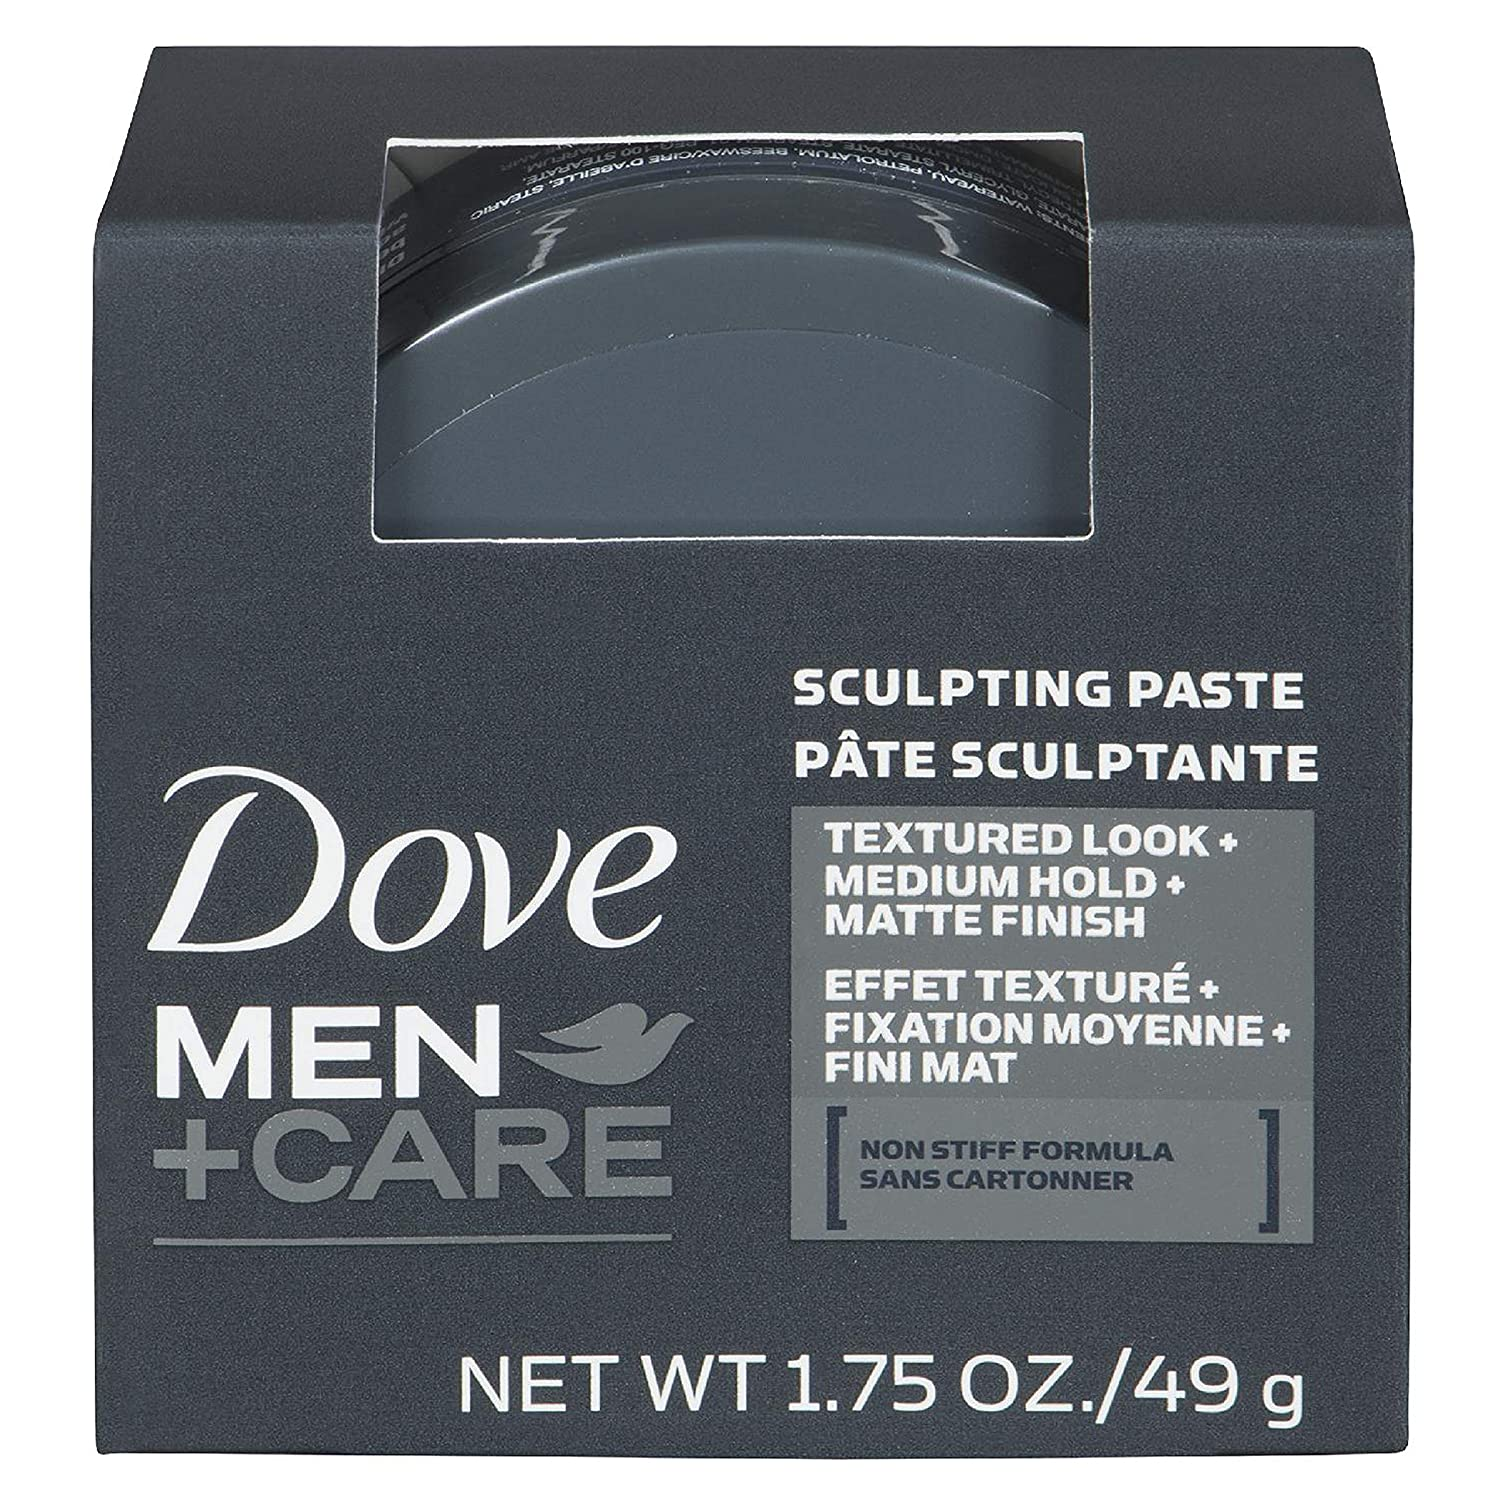 Dove Men +Care Styling Paste Sculpt & Texturize 49g Dove Men + Care 10079400263916